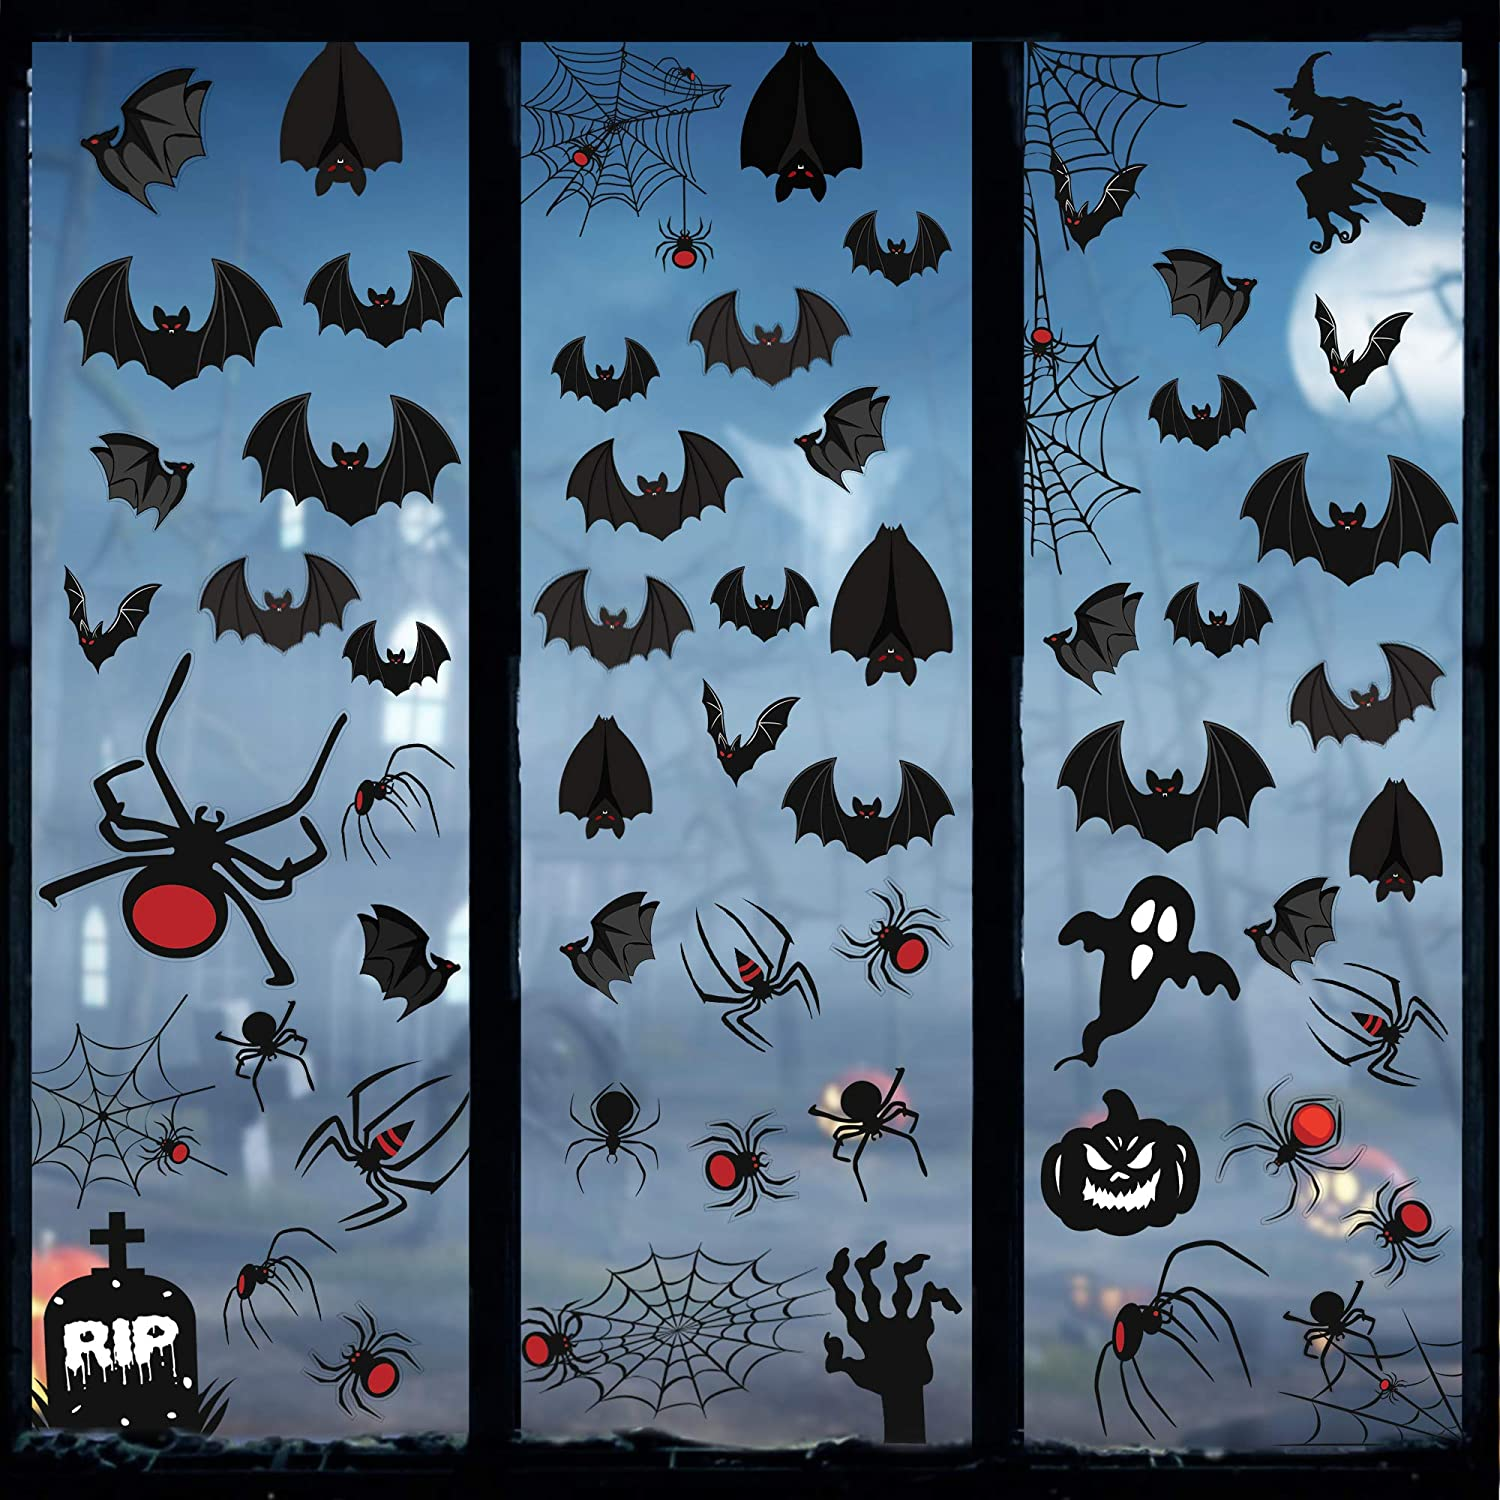 Tifeson Halloween Decorations Window Clings Decals - Large Scary Spider Bat Ghost Window Stickers Decorations for Kids School Home Office Decor, 8 Sheet 108Pcs